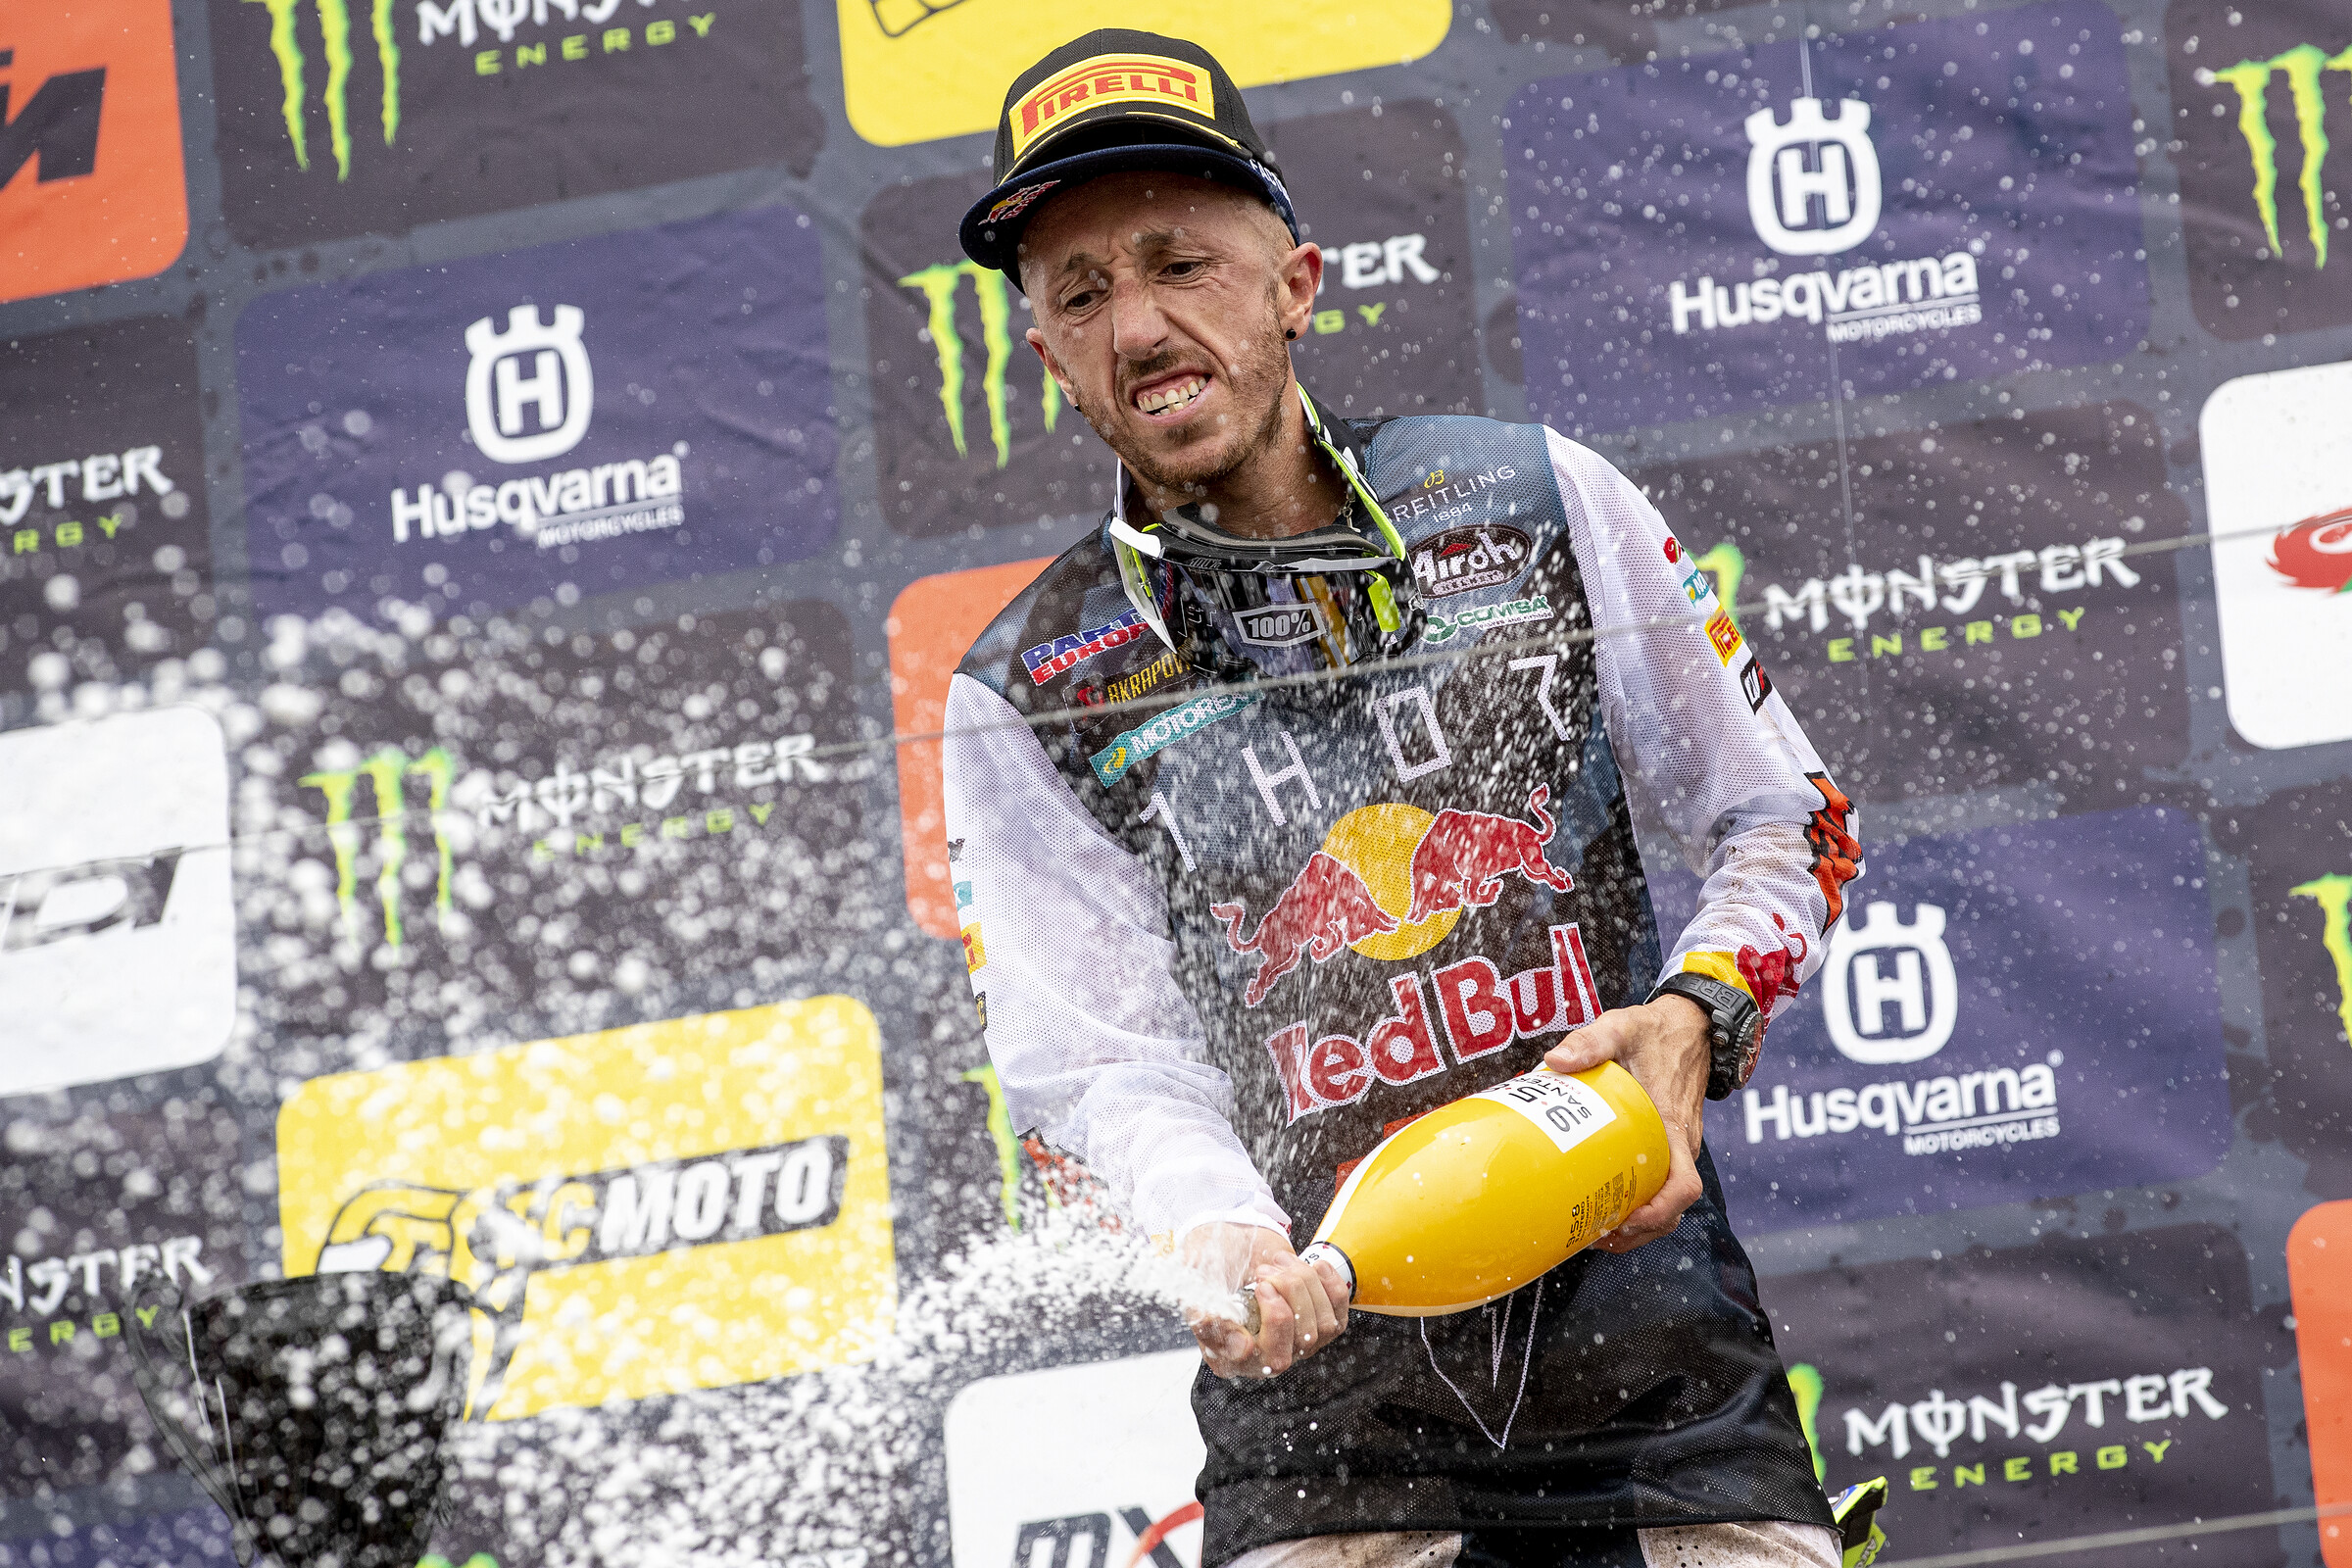 Antonio Cairoli's last win to date came at the 2021 MXGP of Great Britain. It was his 93rd Grand Prix victory.